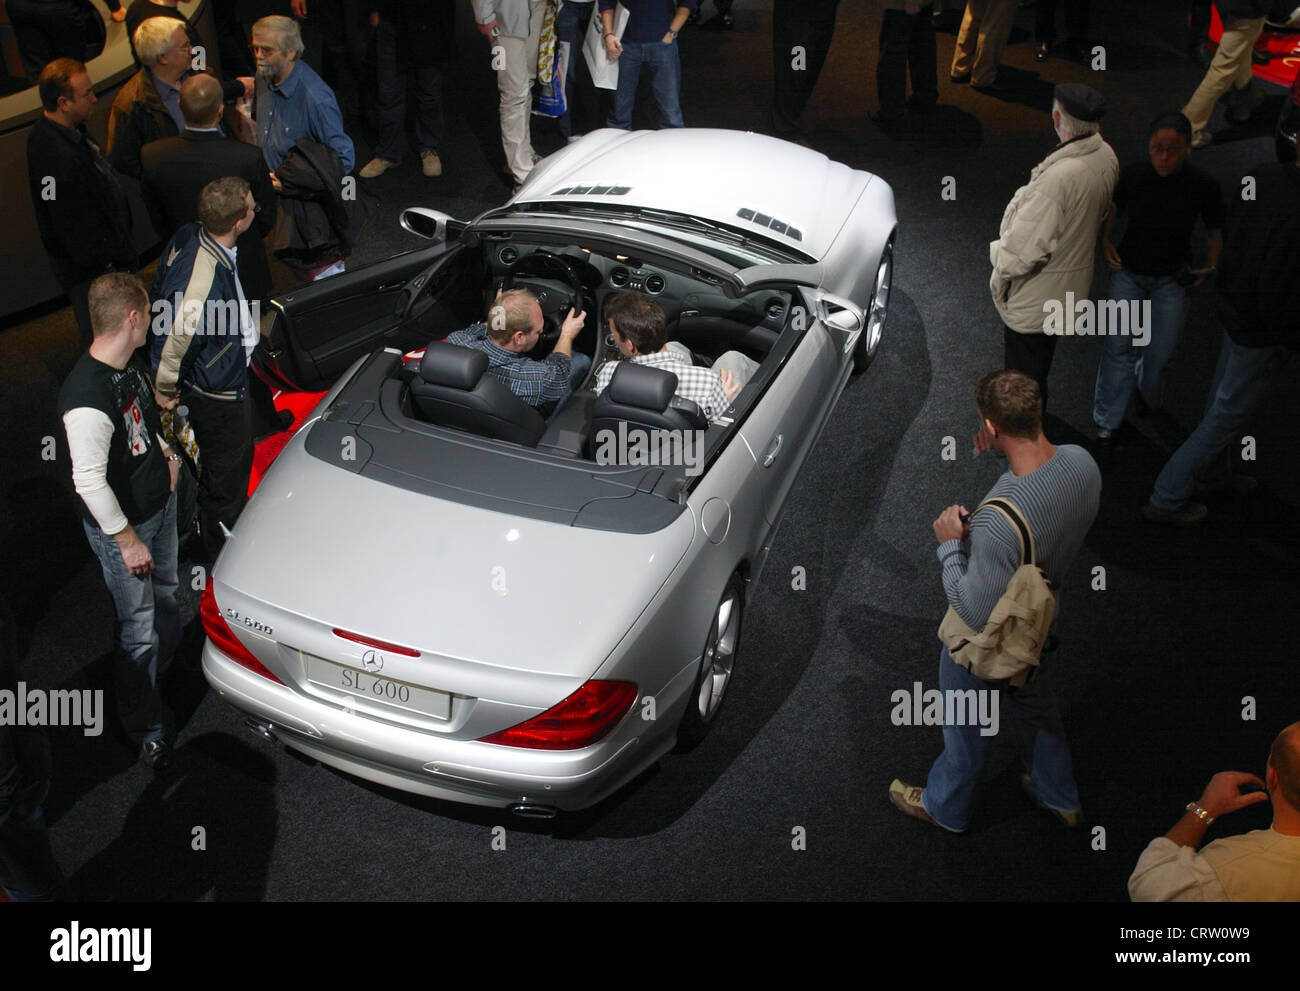 Mercedes SL 600 Convertible at the ESSEN MOTOR SHOW - Stock Image